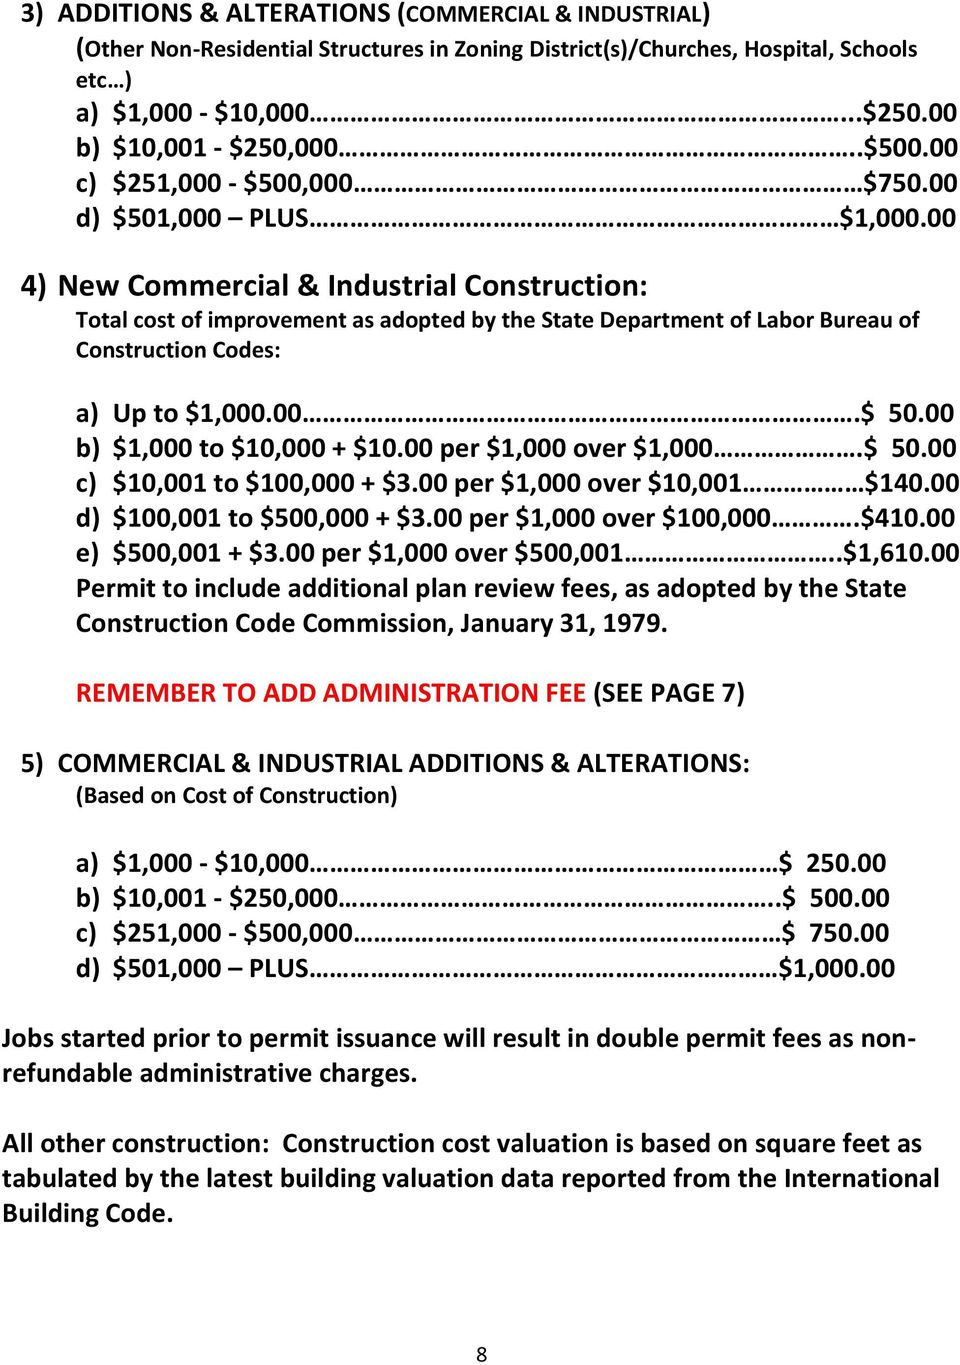 00 4) New Commercial & Industrial Construction: Total cost of improvement as adopted by the State Department of Labor Bureau of Construction Codes: a) Up to $1,000.00.$ 50.